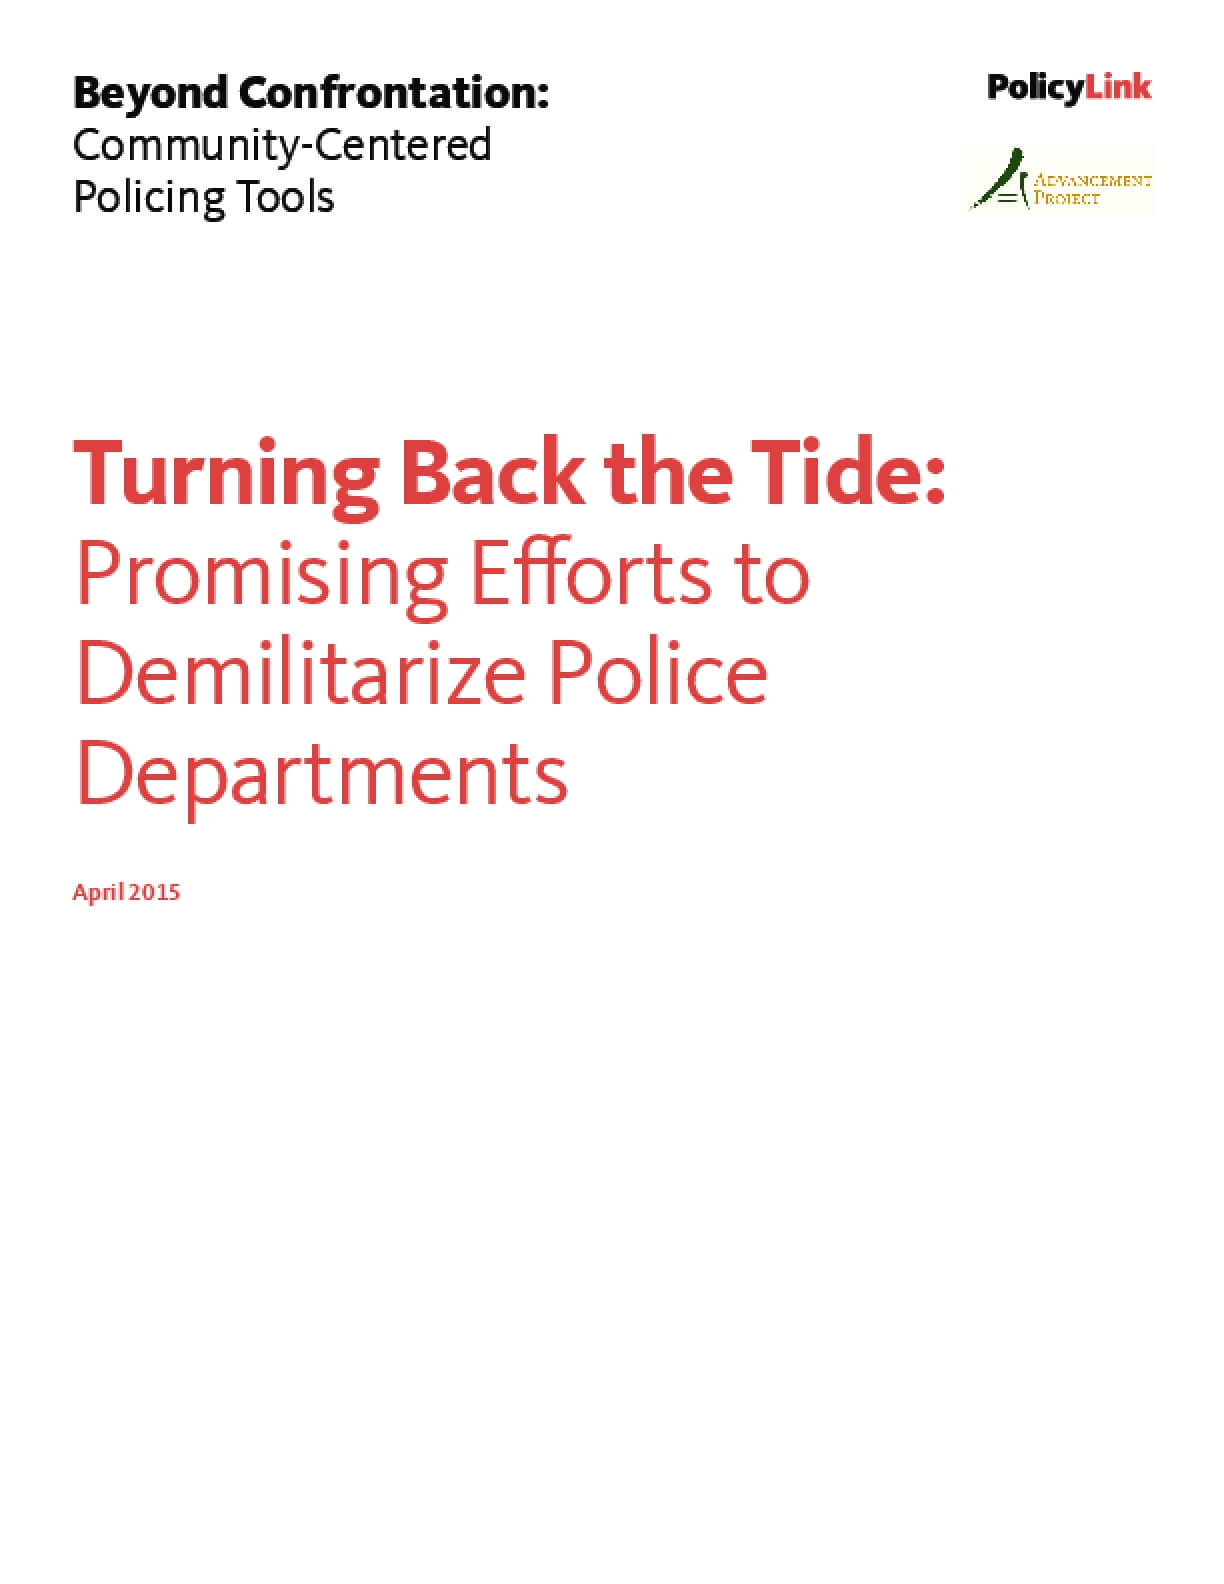 Turning Back the Tide: Promising Efforts to Demilitarize Police Departments